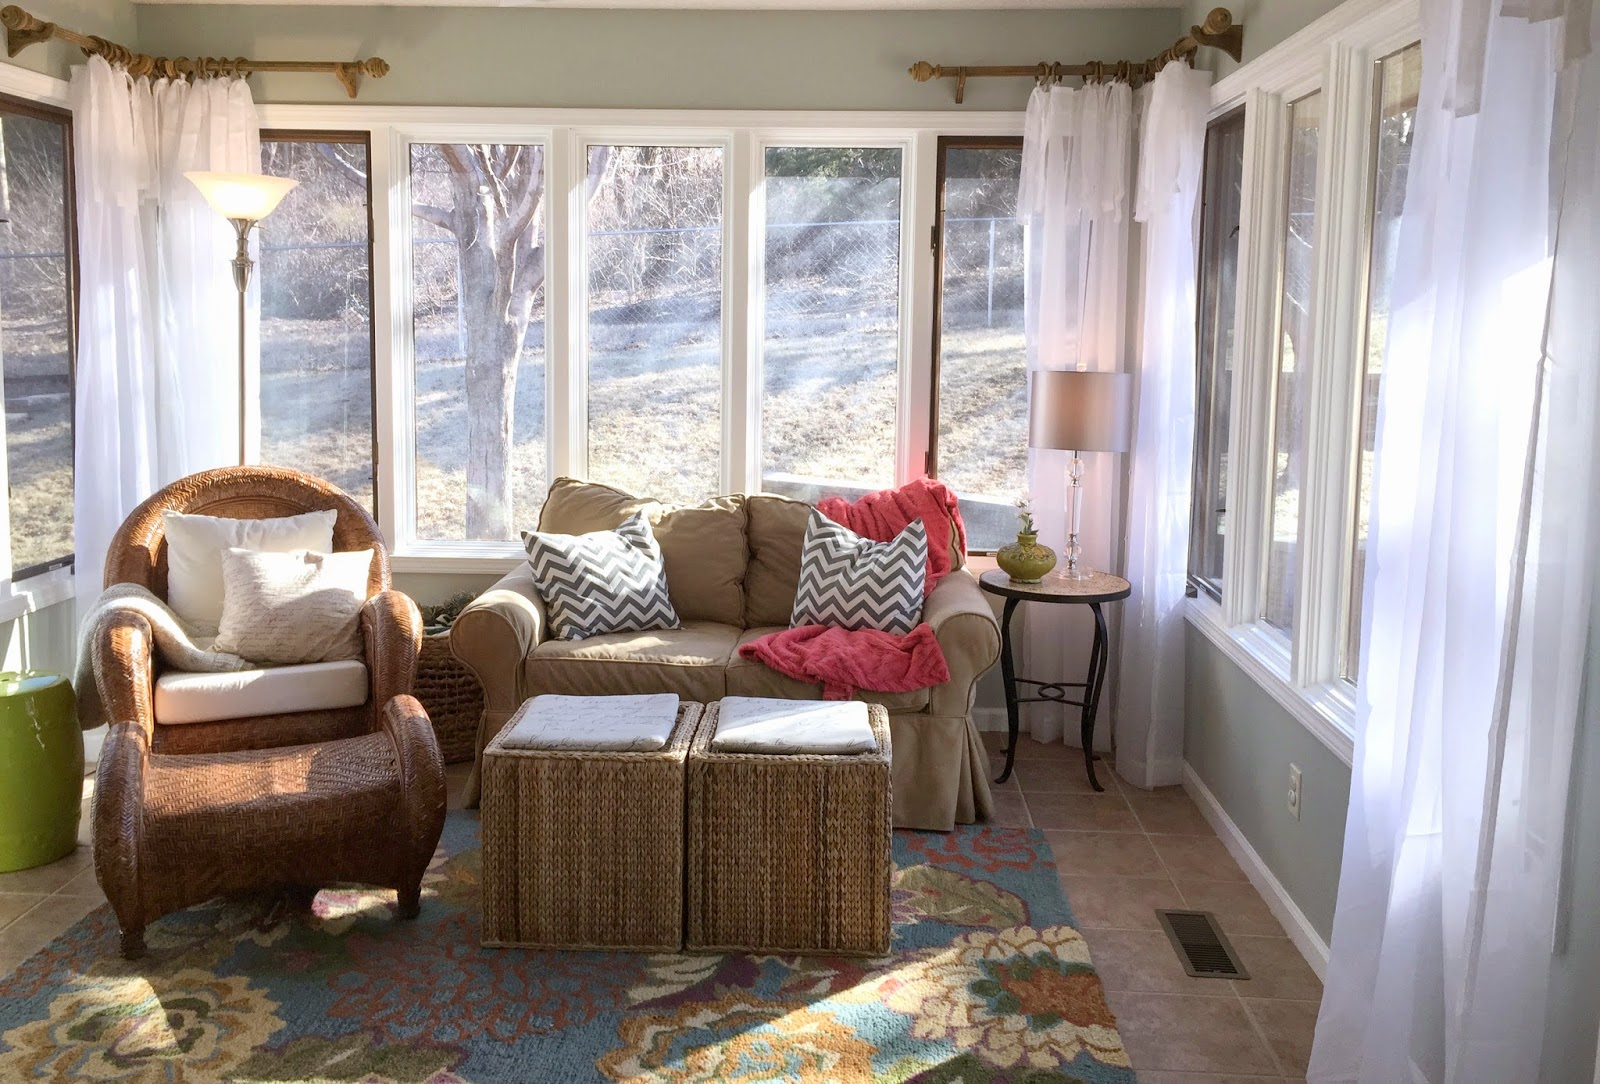 Sunroom Curtain Rods An Easy Eye Catching Diy Project